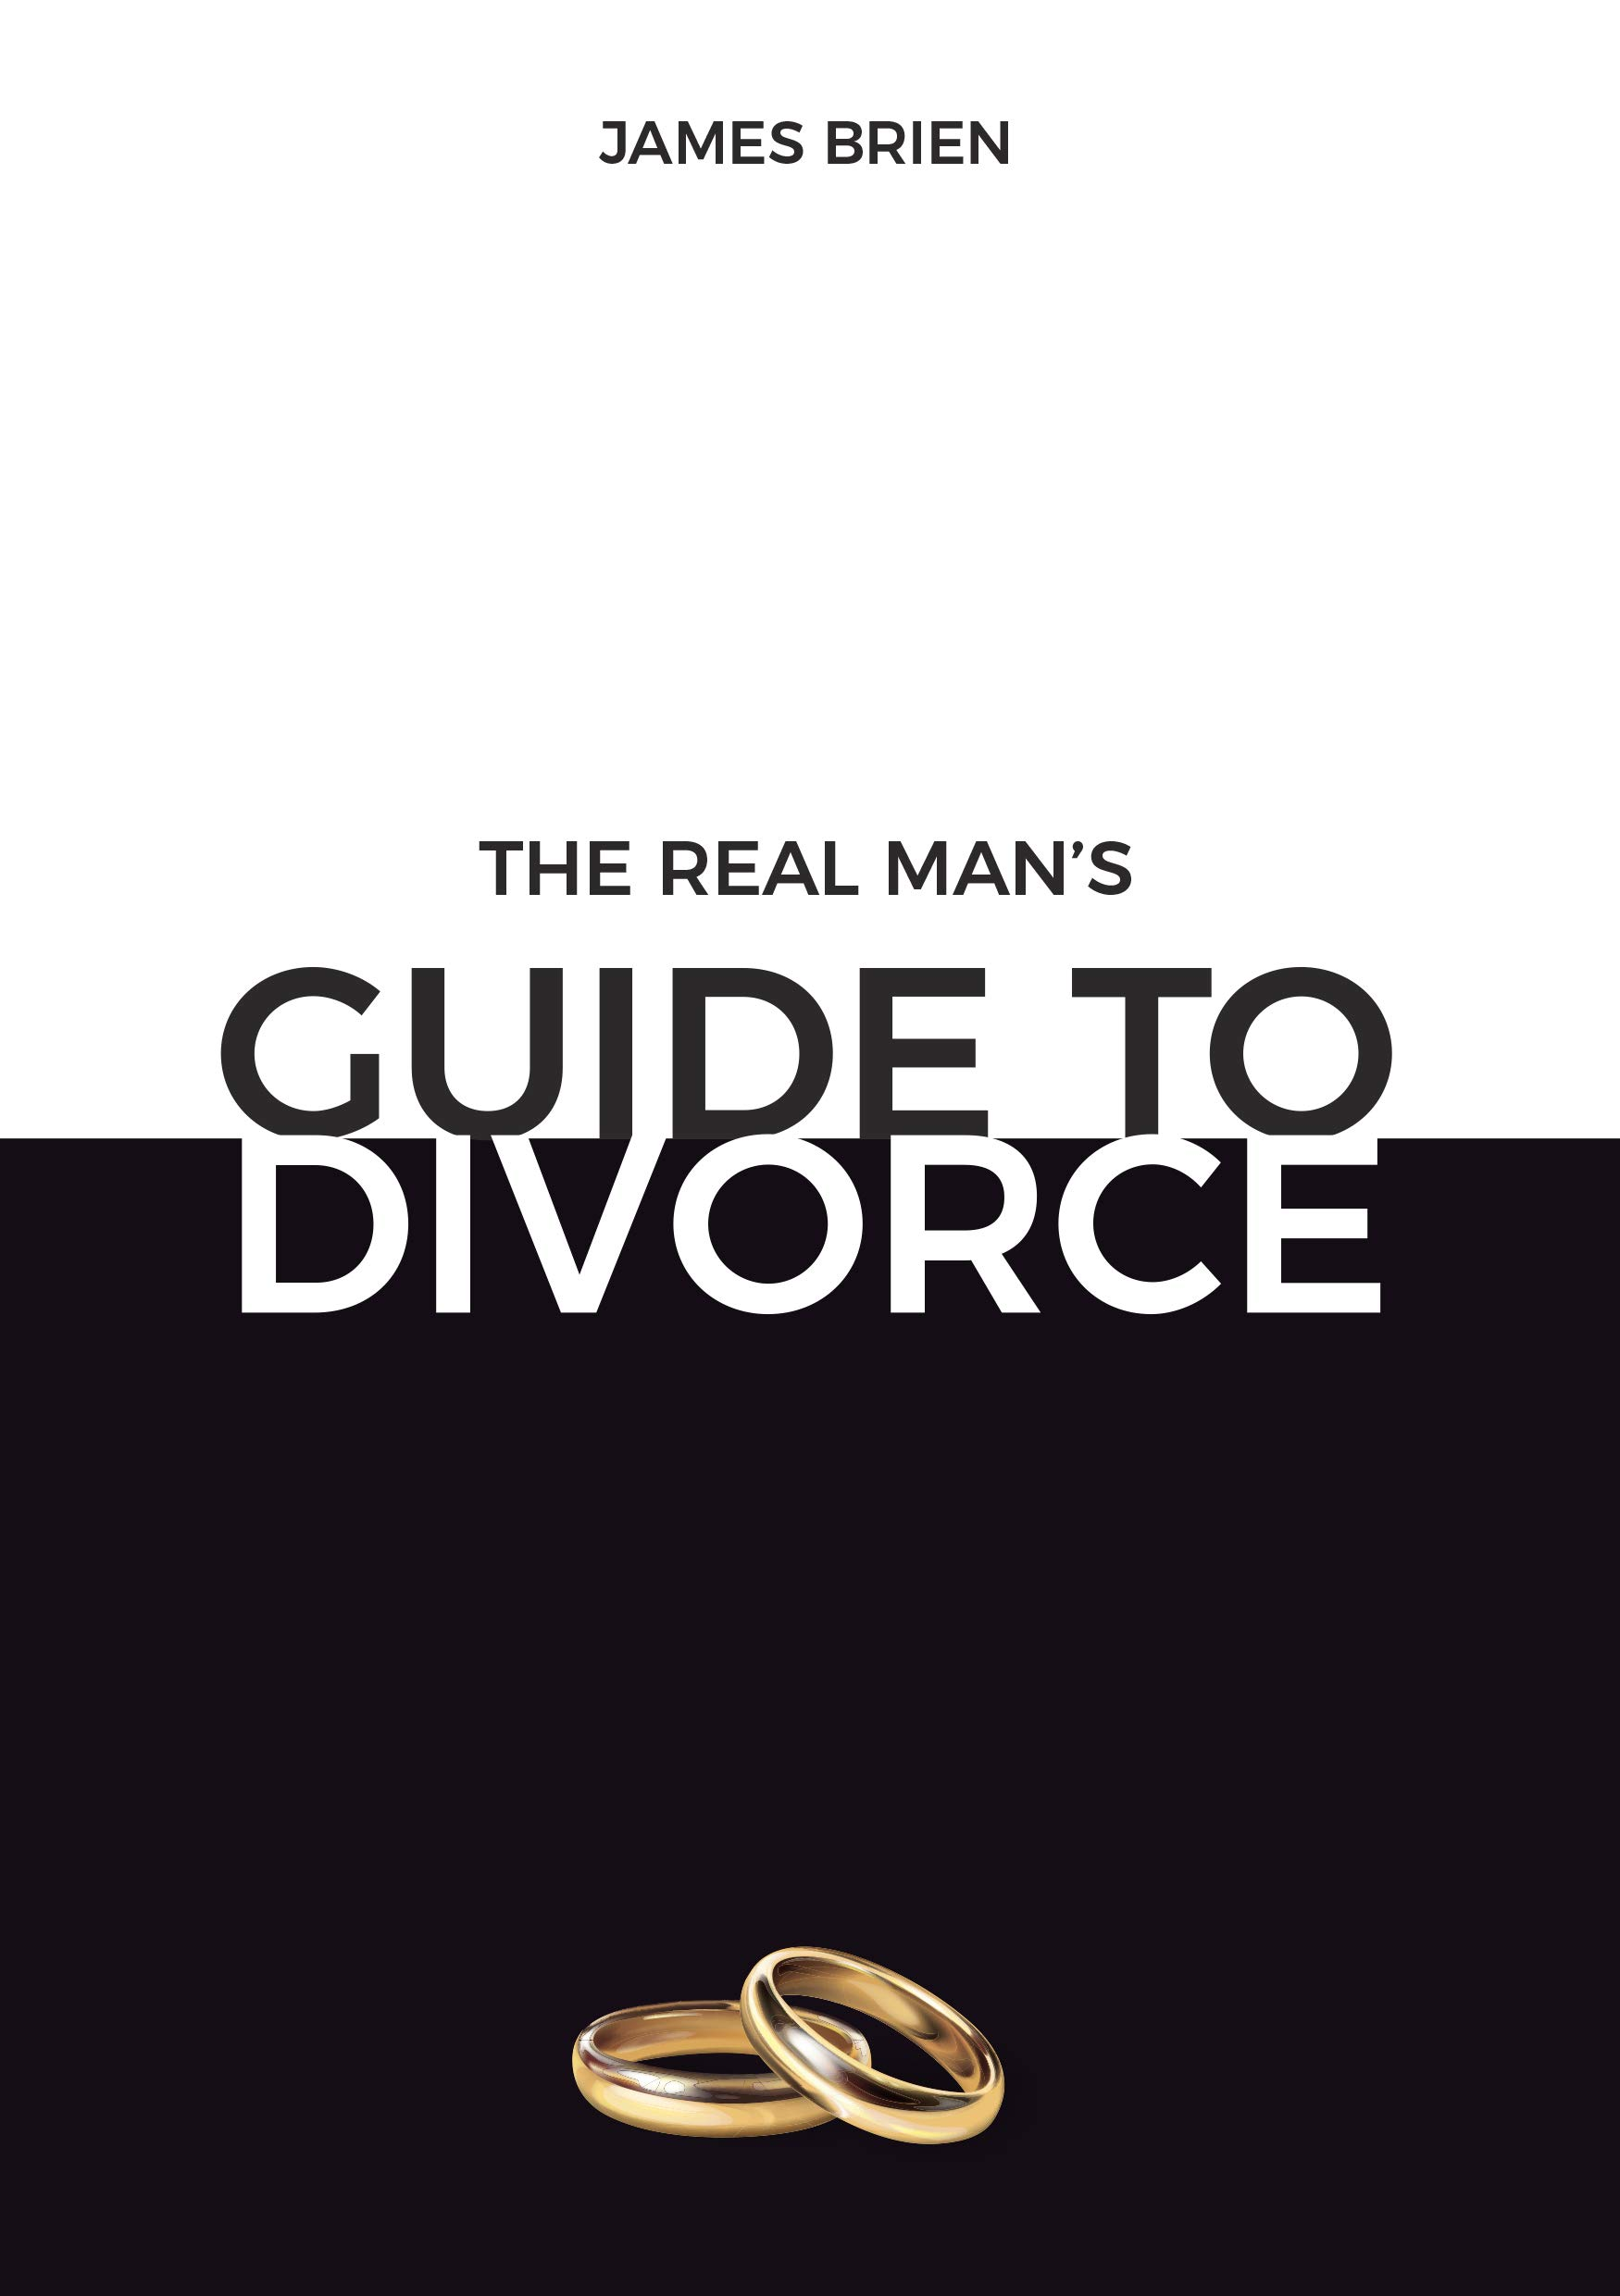 Life after divorce for men: 8 things to expect.